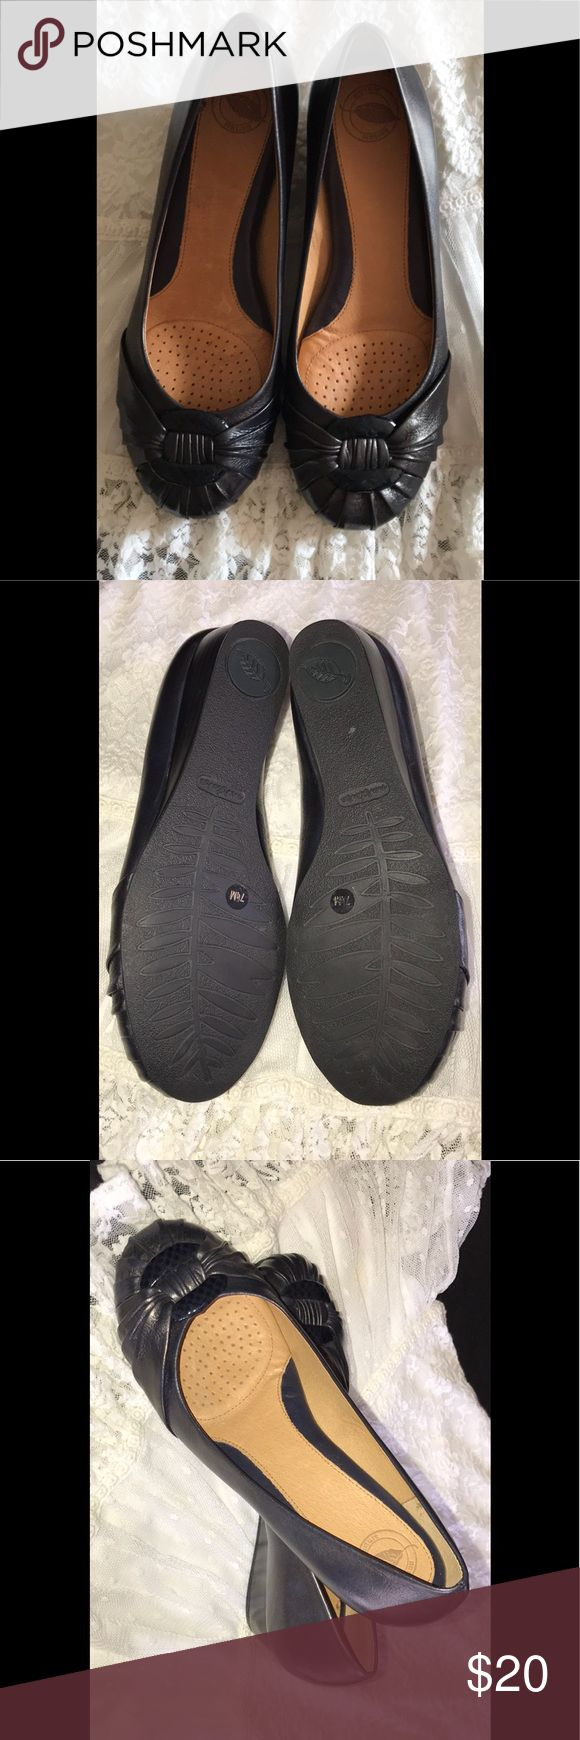 """🌸Nurture Serene Wedge Shoes-Women size 7 1/2 M🌸 These. Nurture Serene Shoes are a 7 1/2 M and Marine Navy in color, leather/manmade upper, 1 1/4"""" wedge heel, new without box🌸 Nurture Shoes Wedges"""